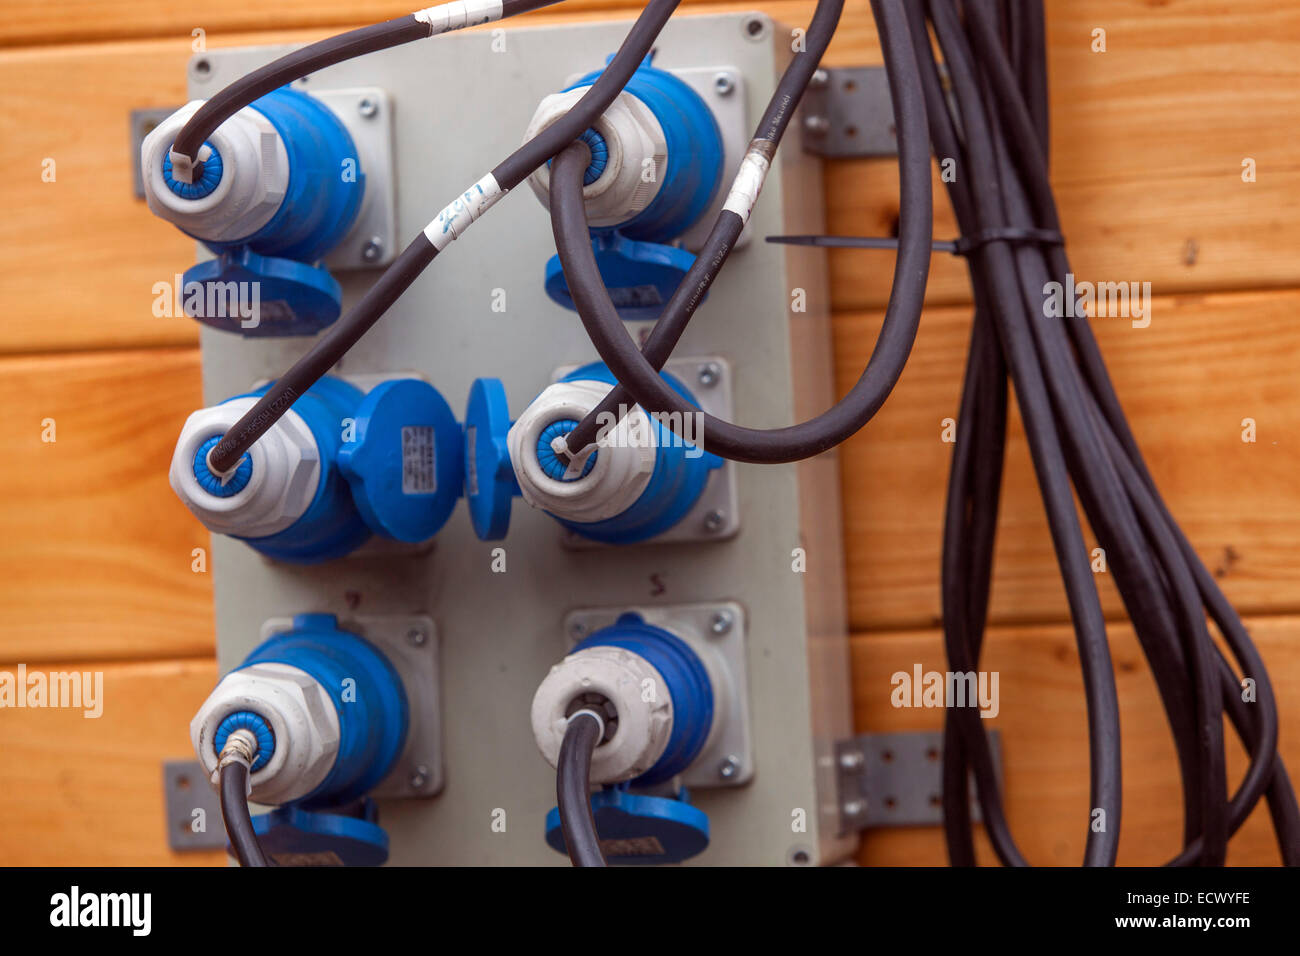 electrical outlets connected to the electricity - Stock Image